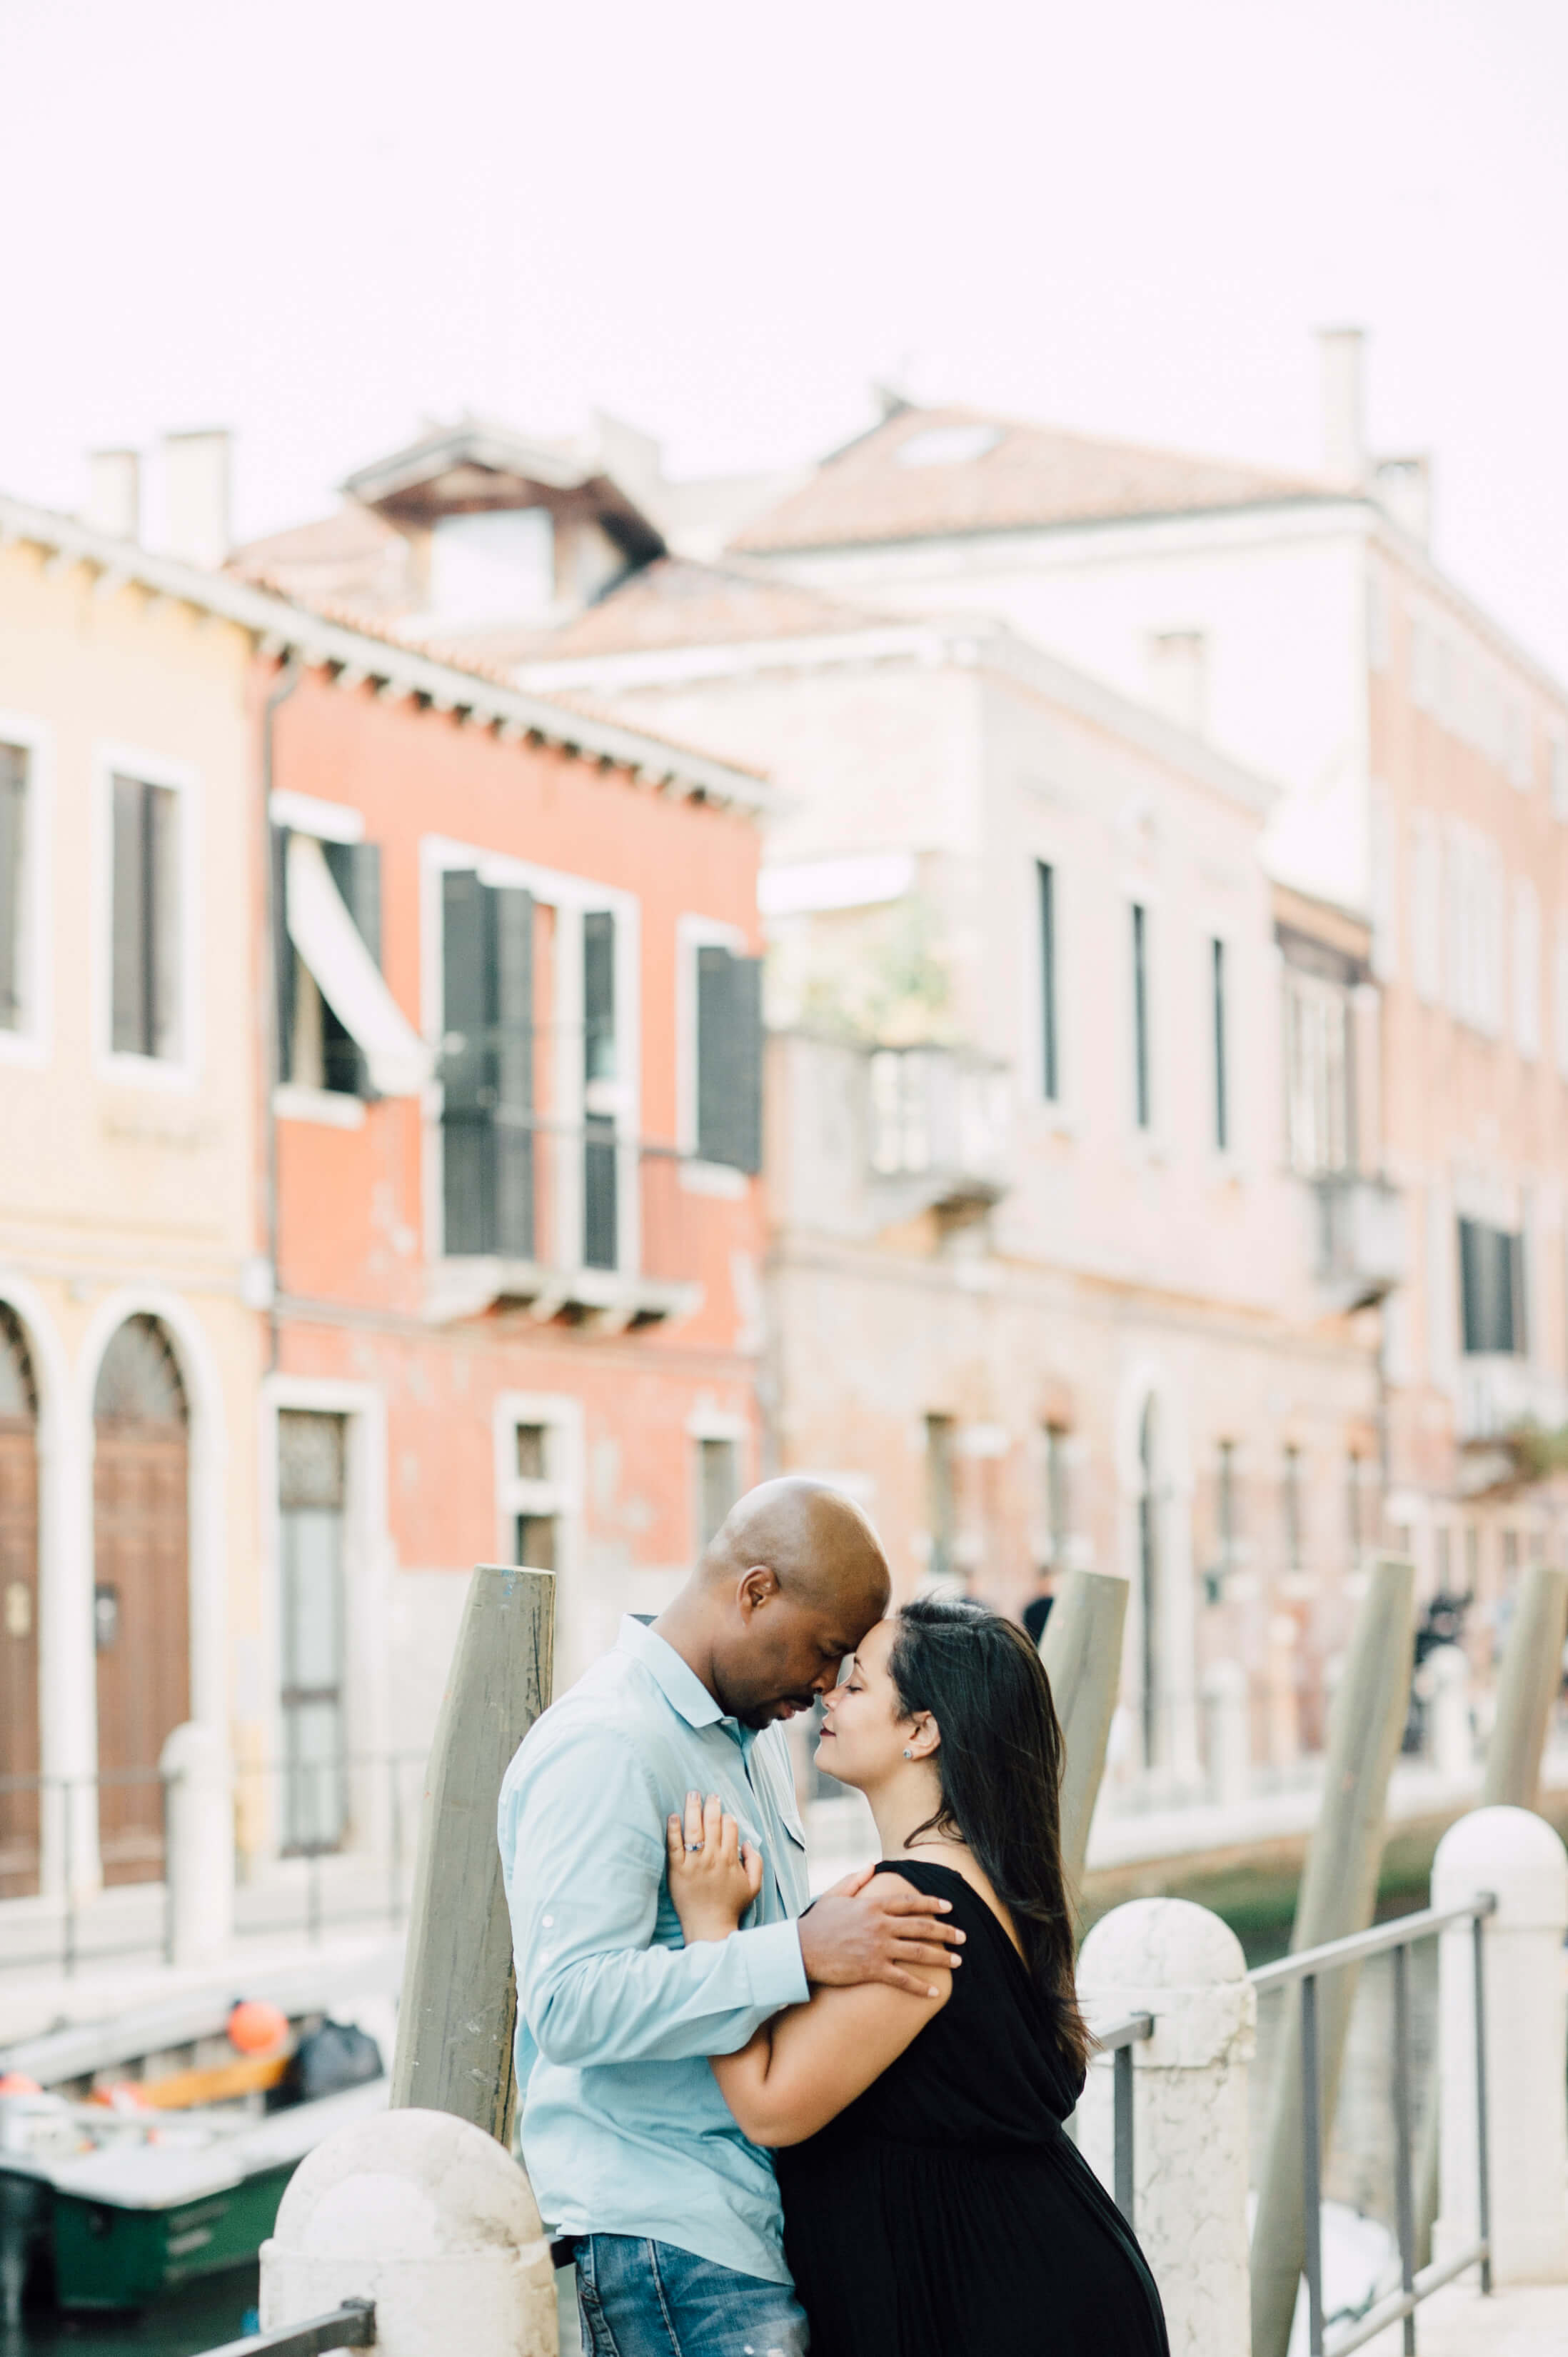 A couple hold each other lovingly on the streets of Venice, Italy.